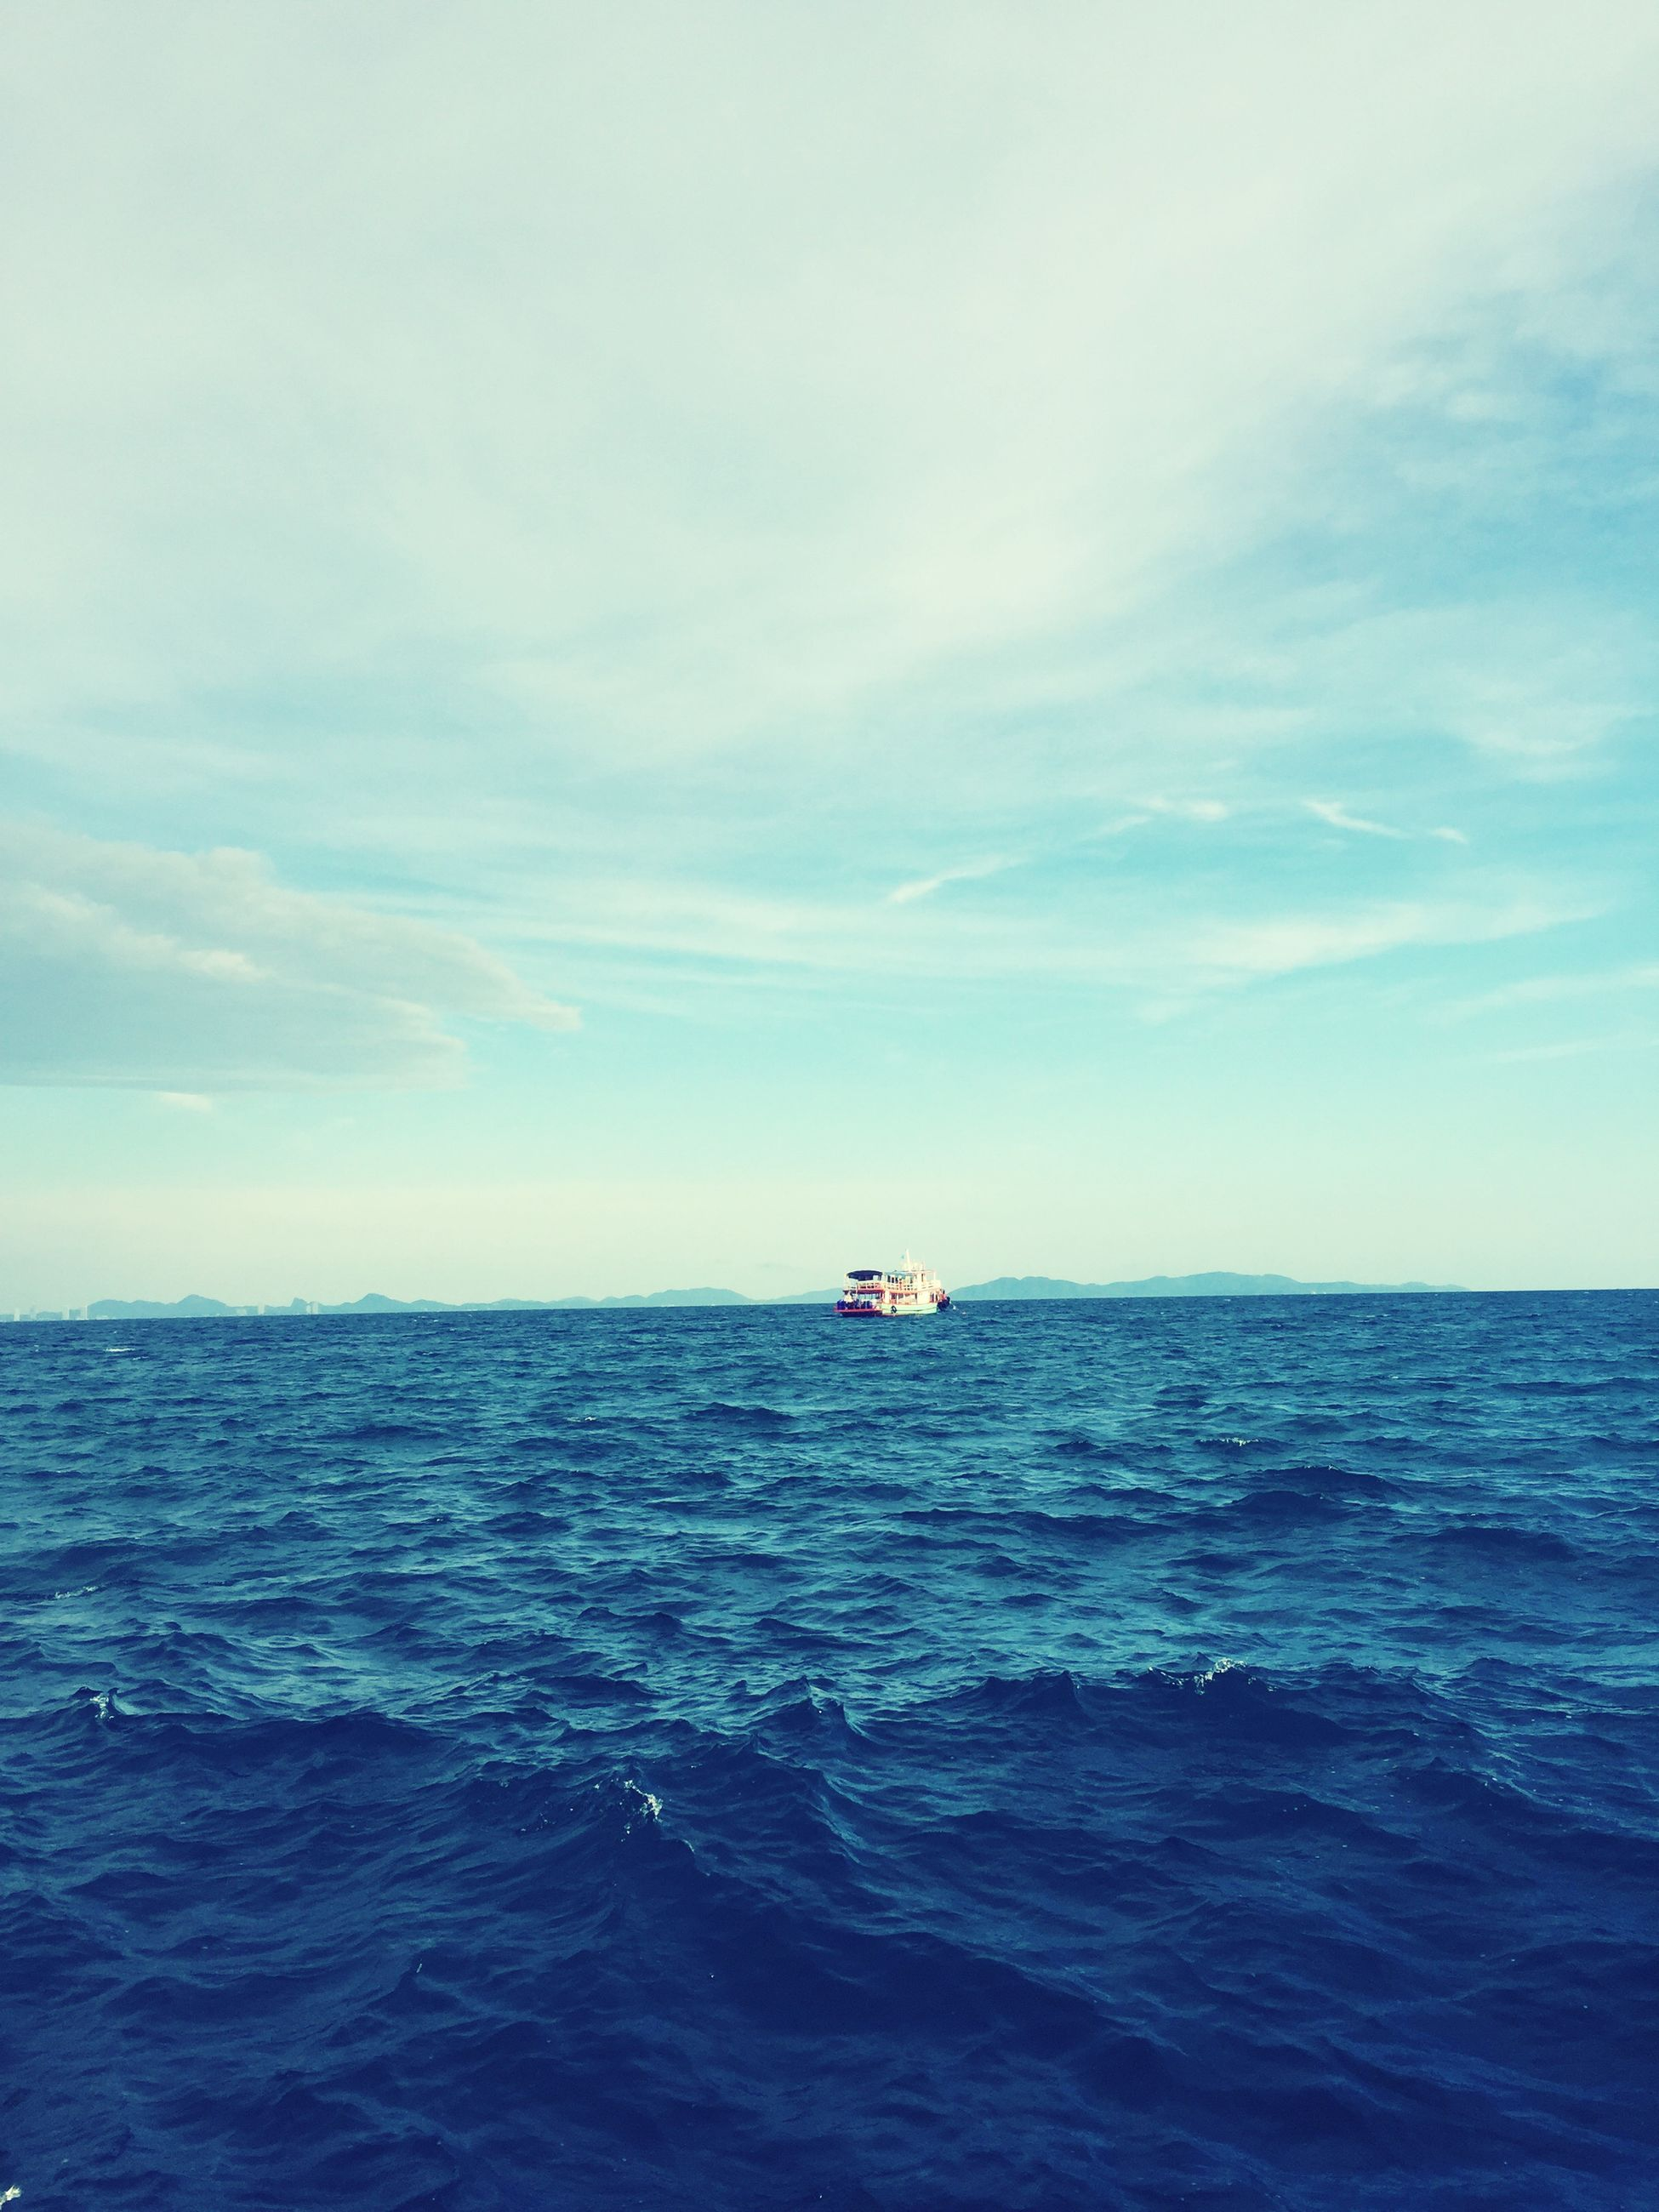 sea, water, horizon over water, waterfront, nautical vessel, transportation, mode of transport, sky, boat, sailing, rippled, blue, scenics, tranquil scene, beauty in nature, tranquility, nature, seascape, cloud - sky, day